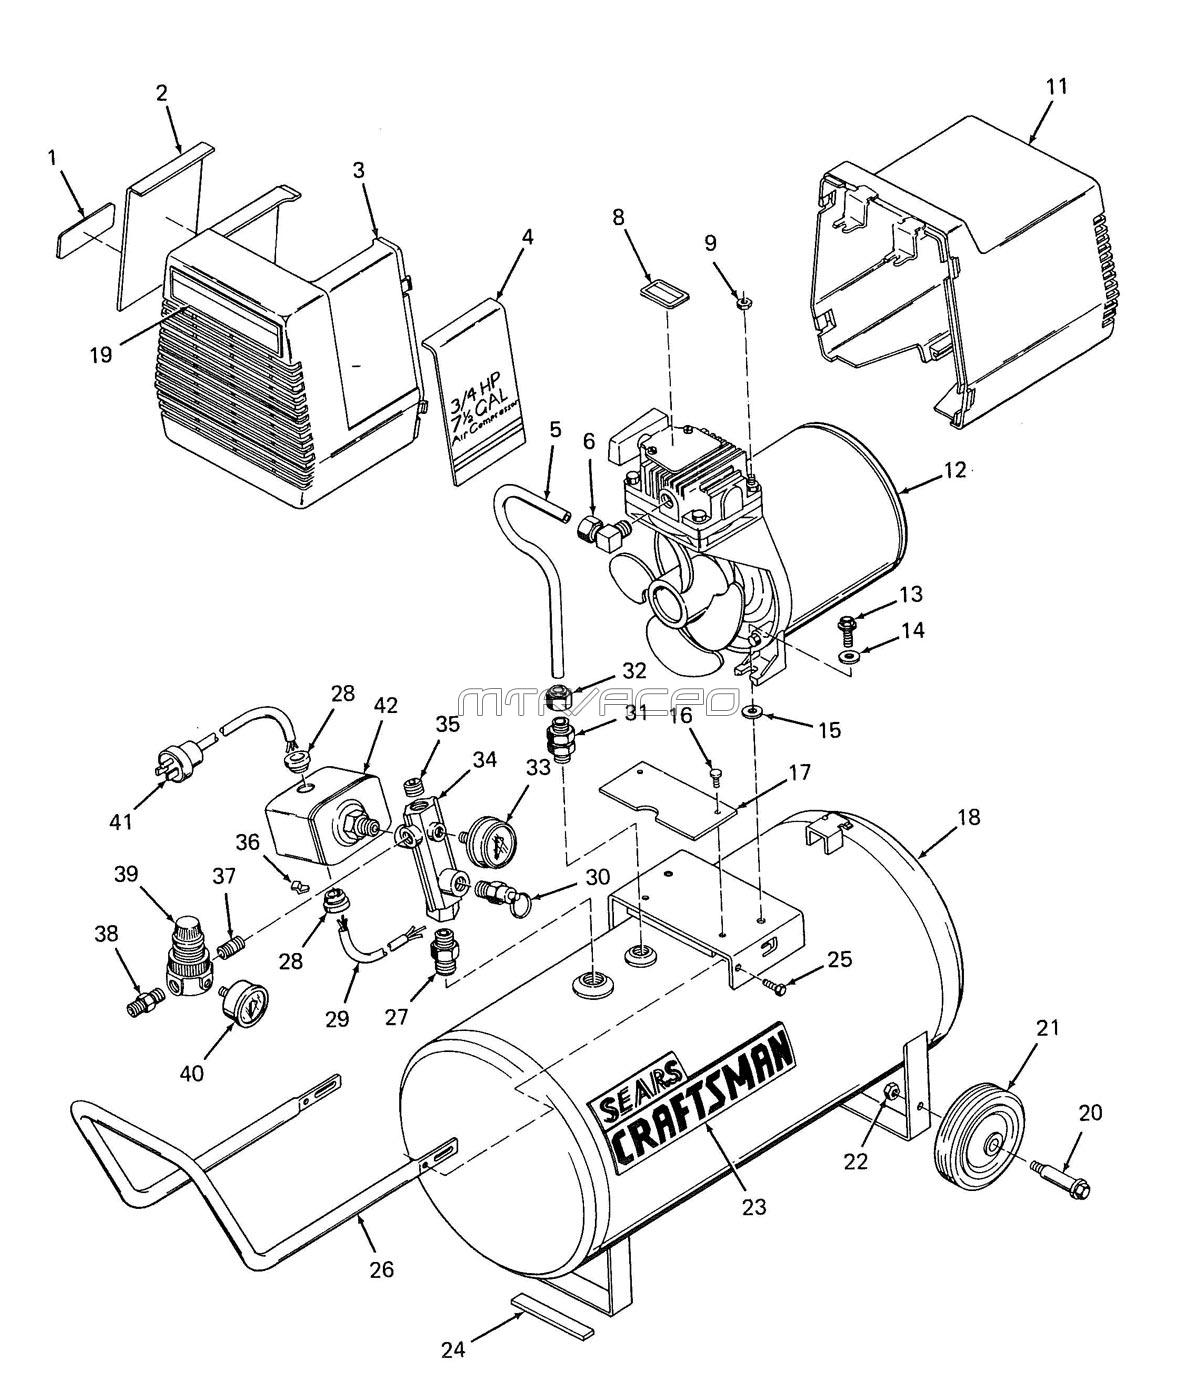 Craftsman Tool Replacement Parts : Sears craftsman air compressor parts